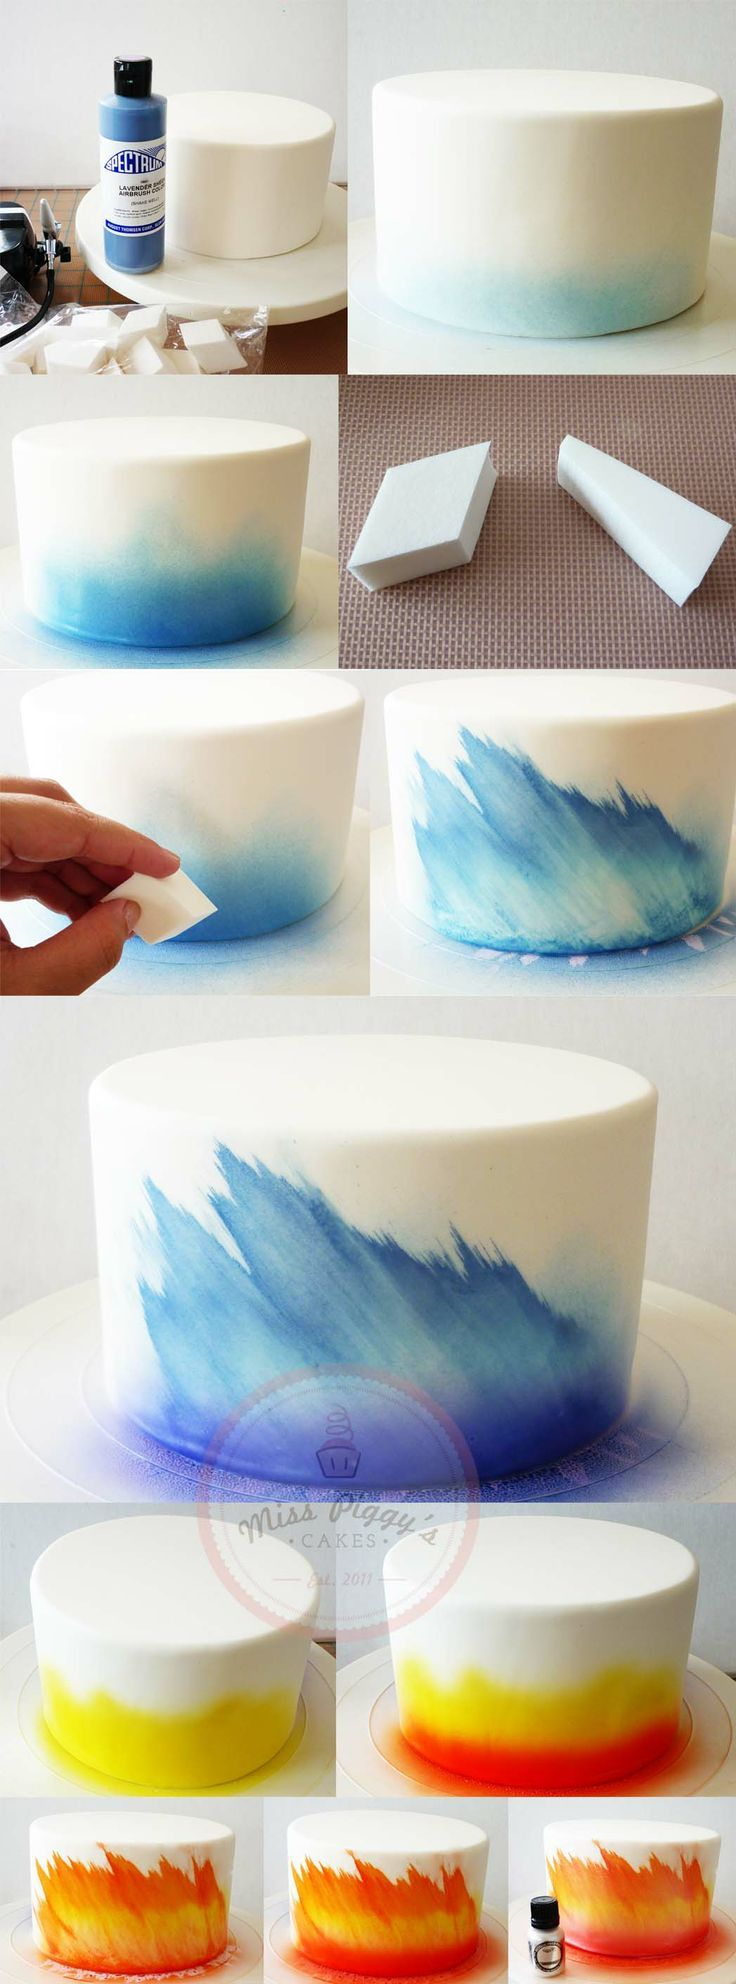 17 best images about airbrush on pinterest birthday for Airbrush cake decoration